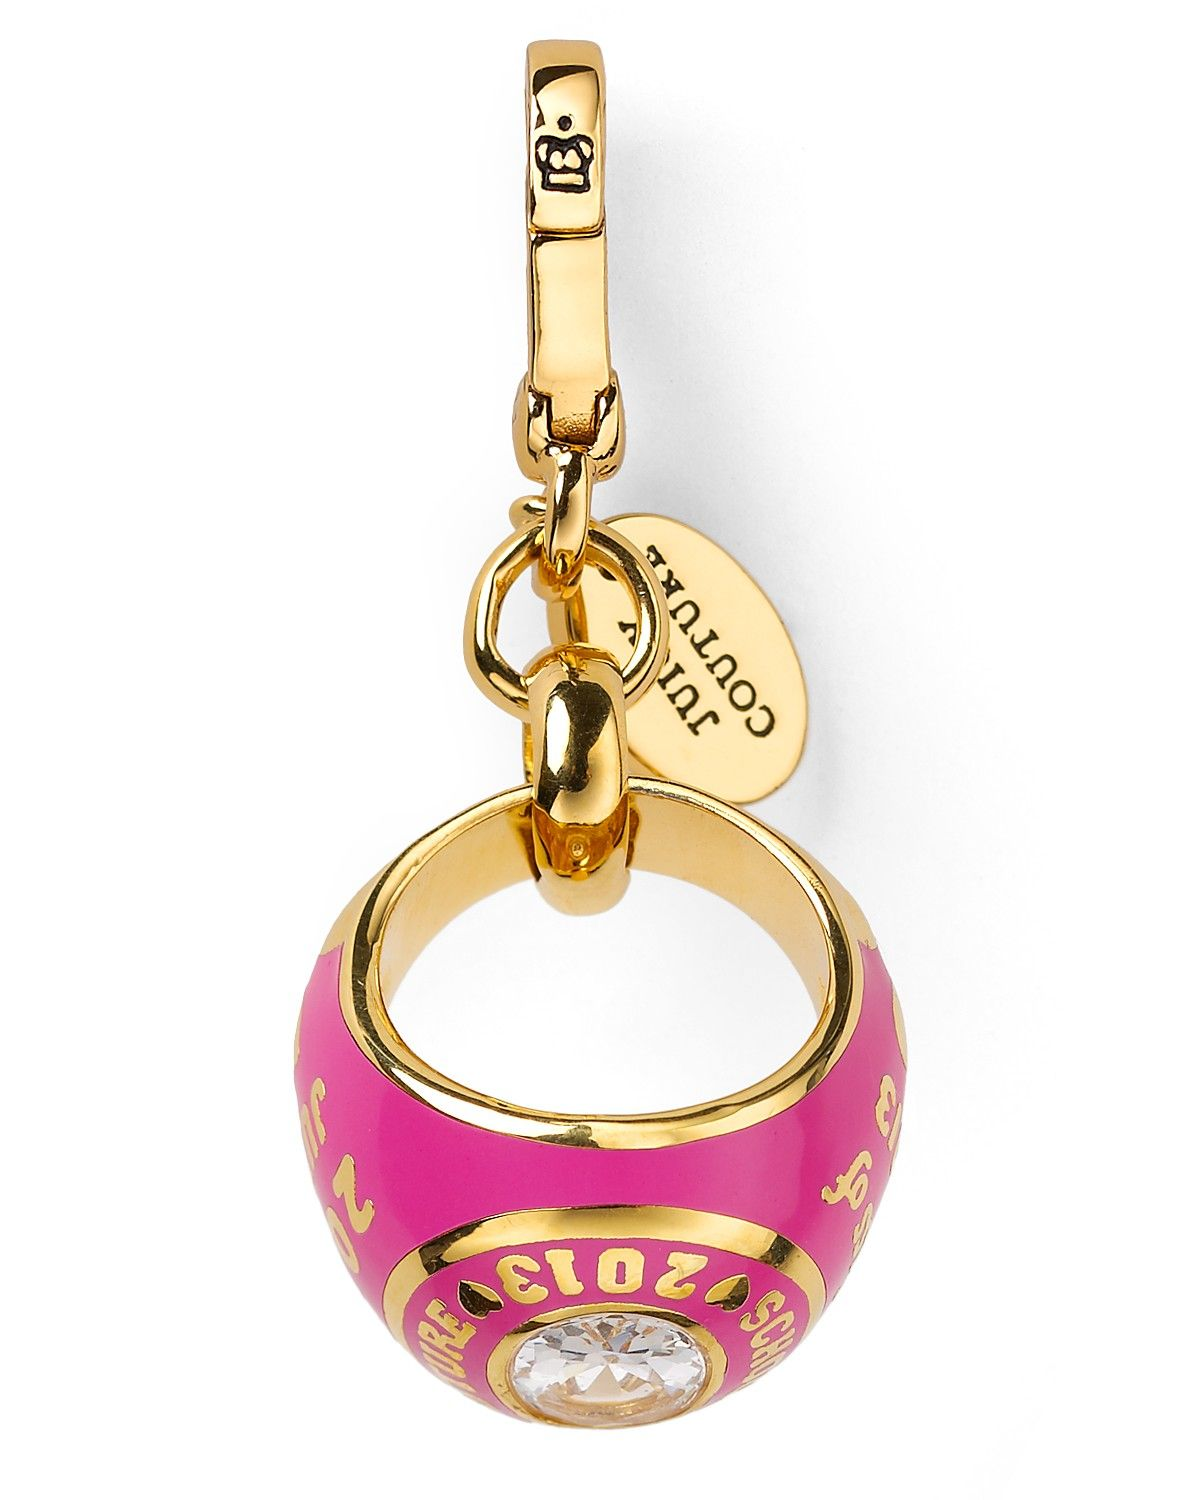 Juicy Couture 2013 limited edition (graduation) Class Ring Charm